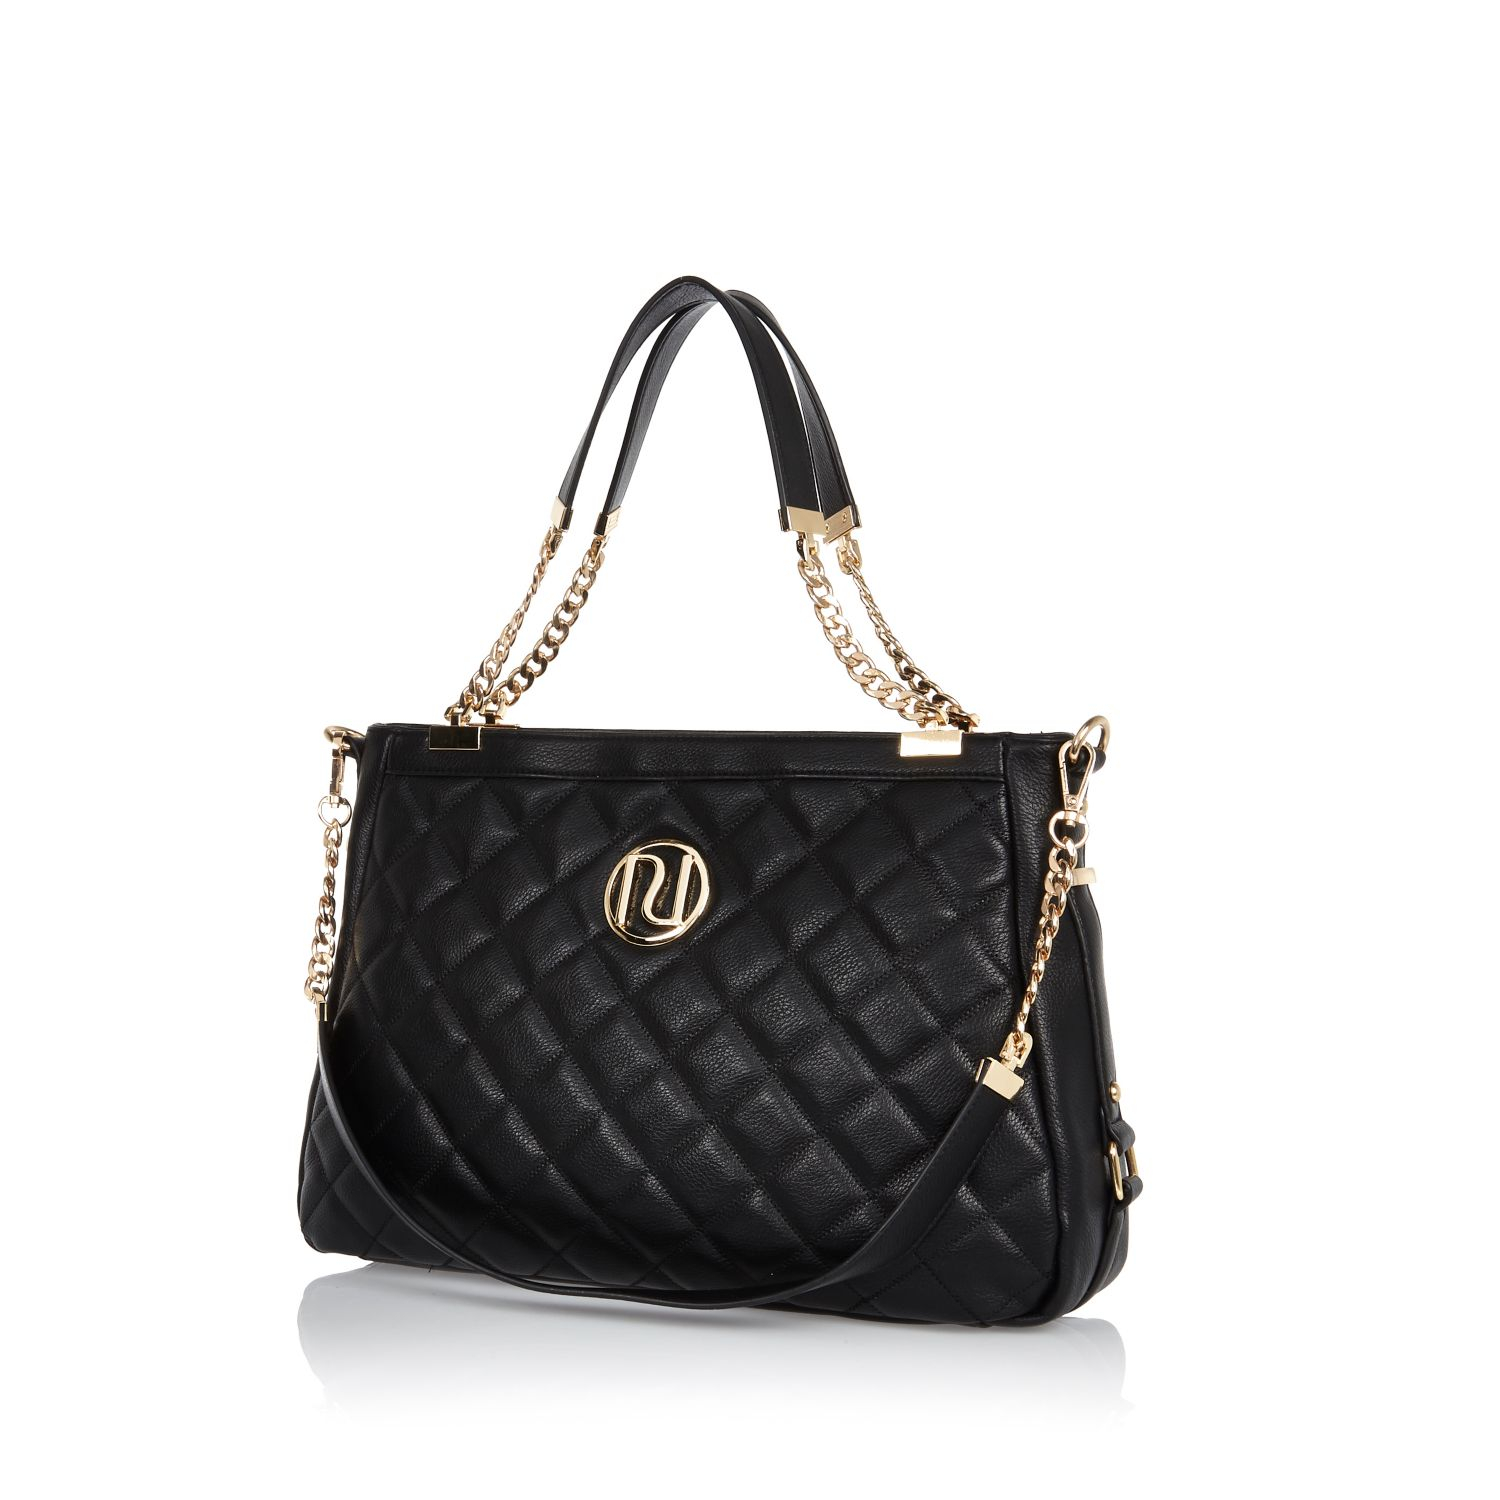 River Island Black Quilted Chain Handle Tote Bag